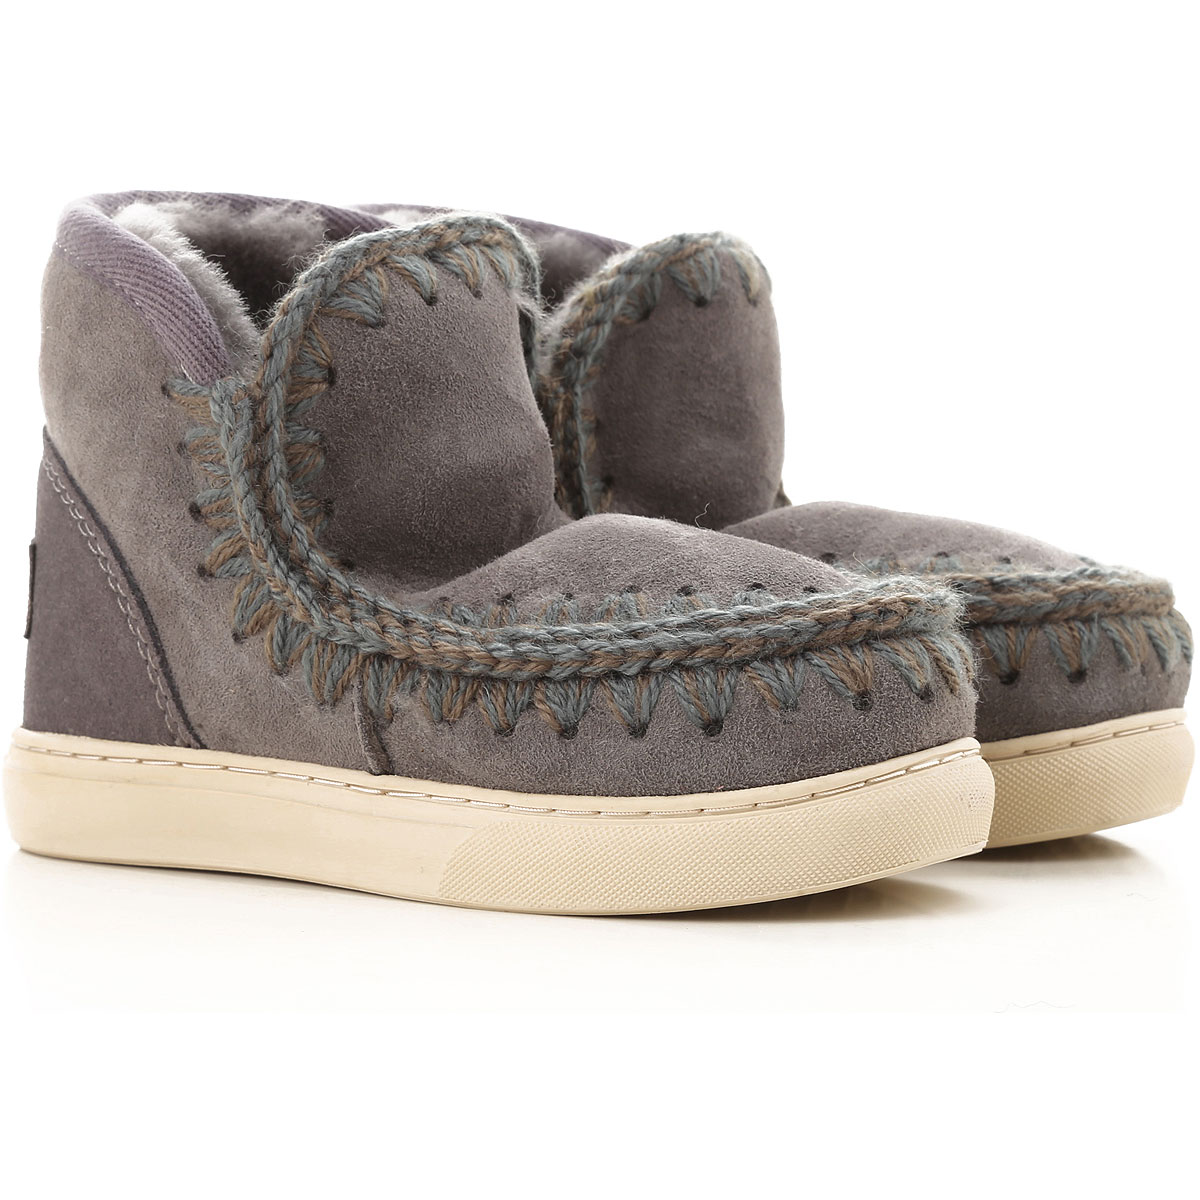 Image of Mou Kids Shoes for Girls, Grey, Leather, 2017, 25 26 27 28 29 30 31 32 33 34 35